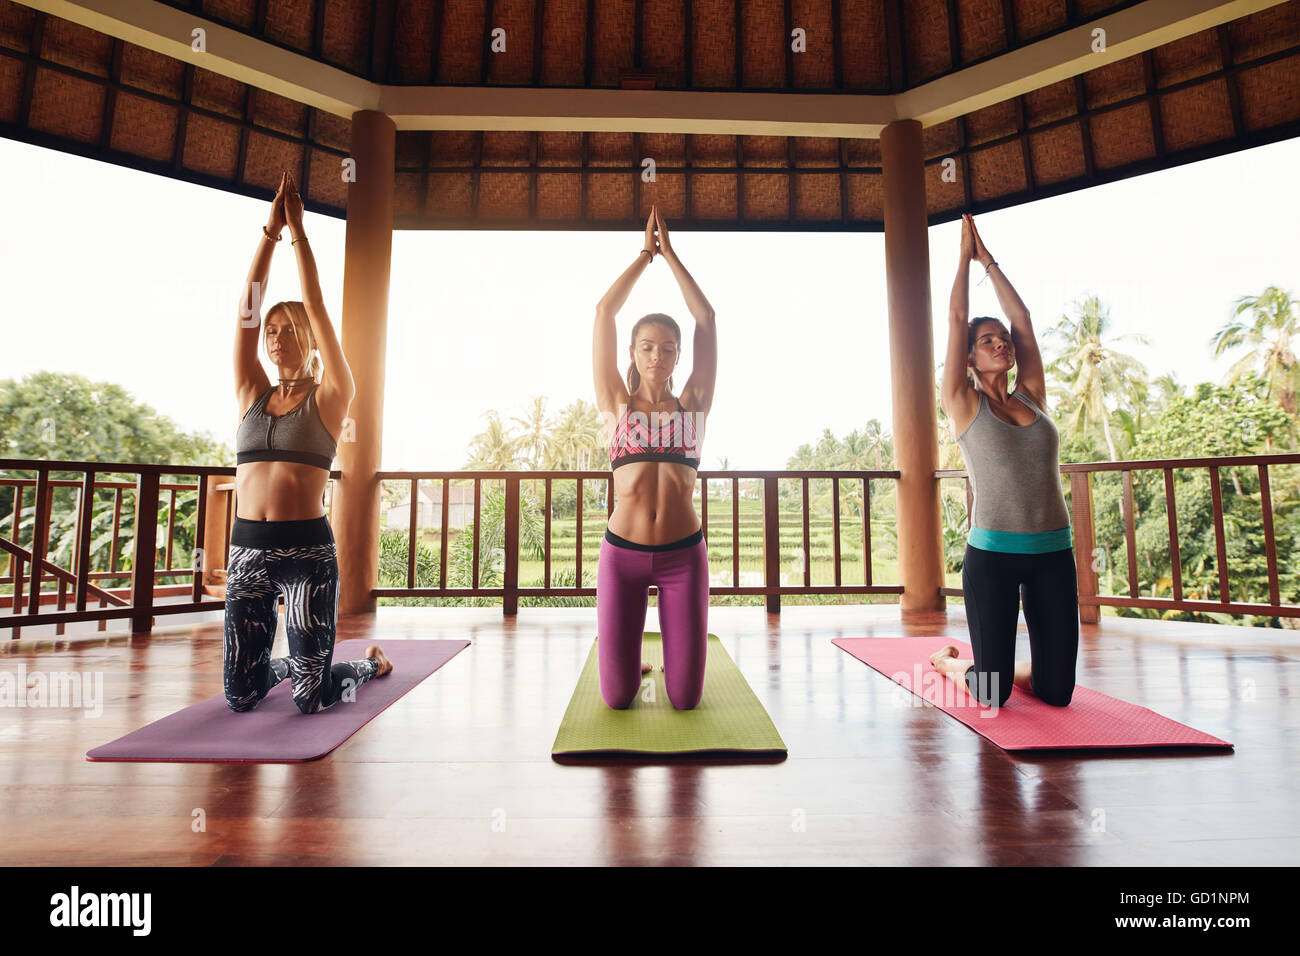 Shot of three young women doing yoga at health club. Female kneeling on exercise mat with their hands joined overhead. - Stock Image